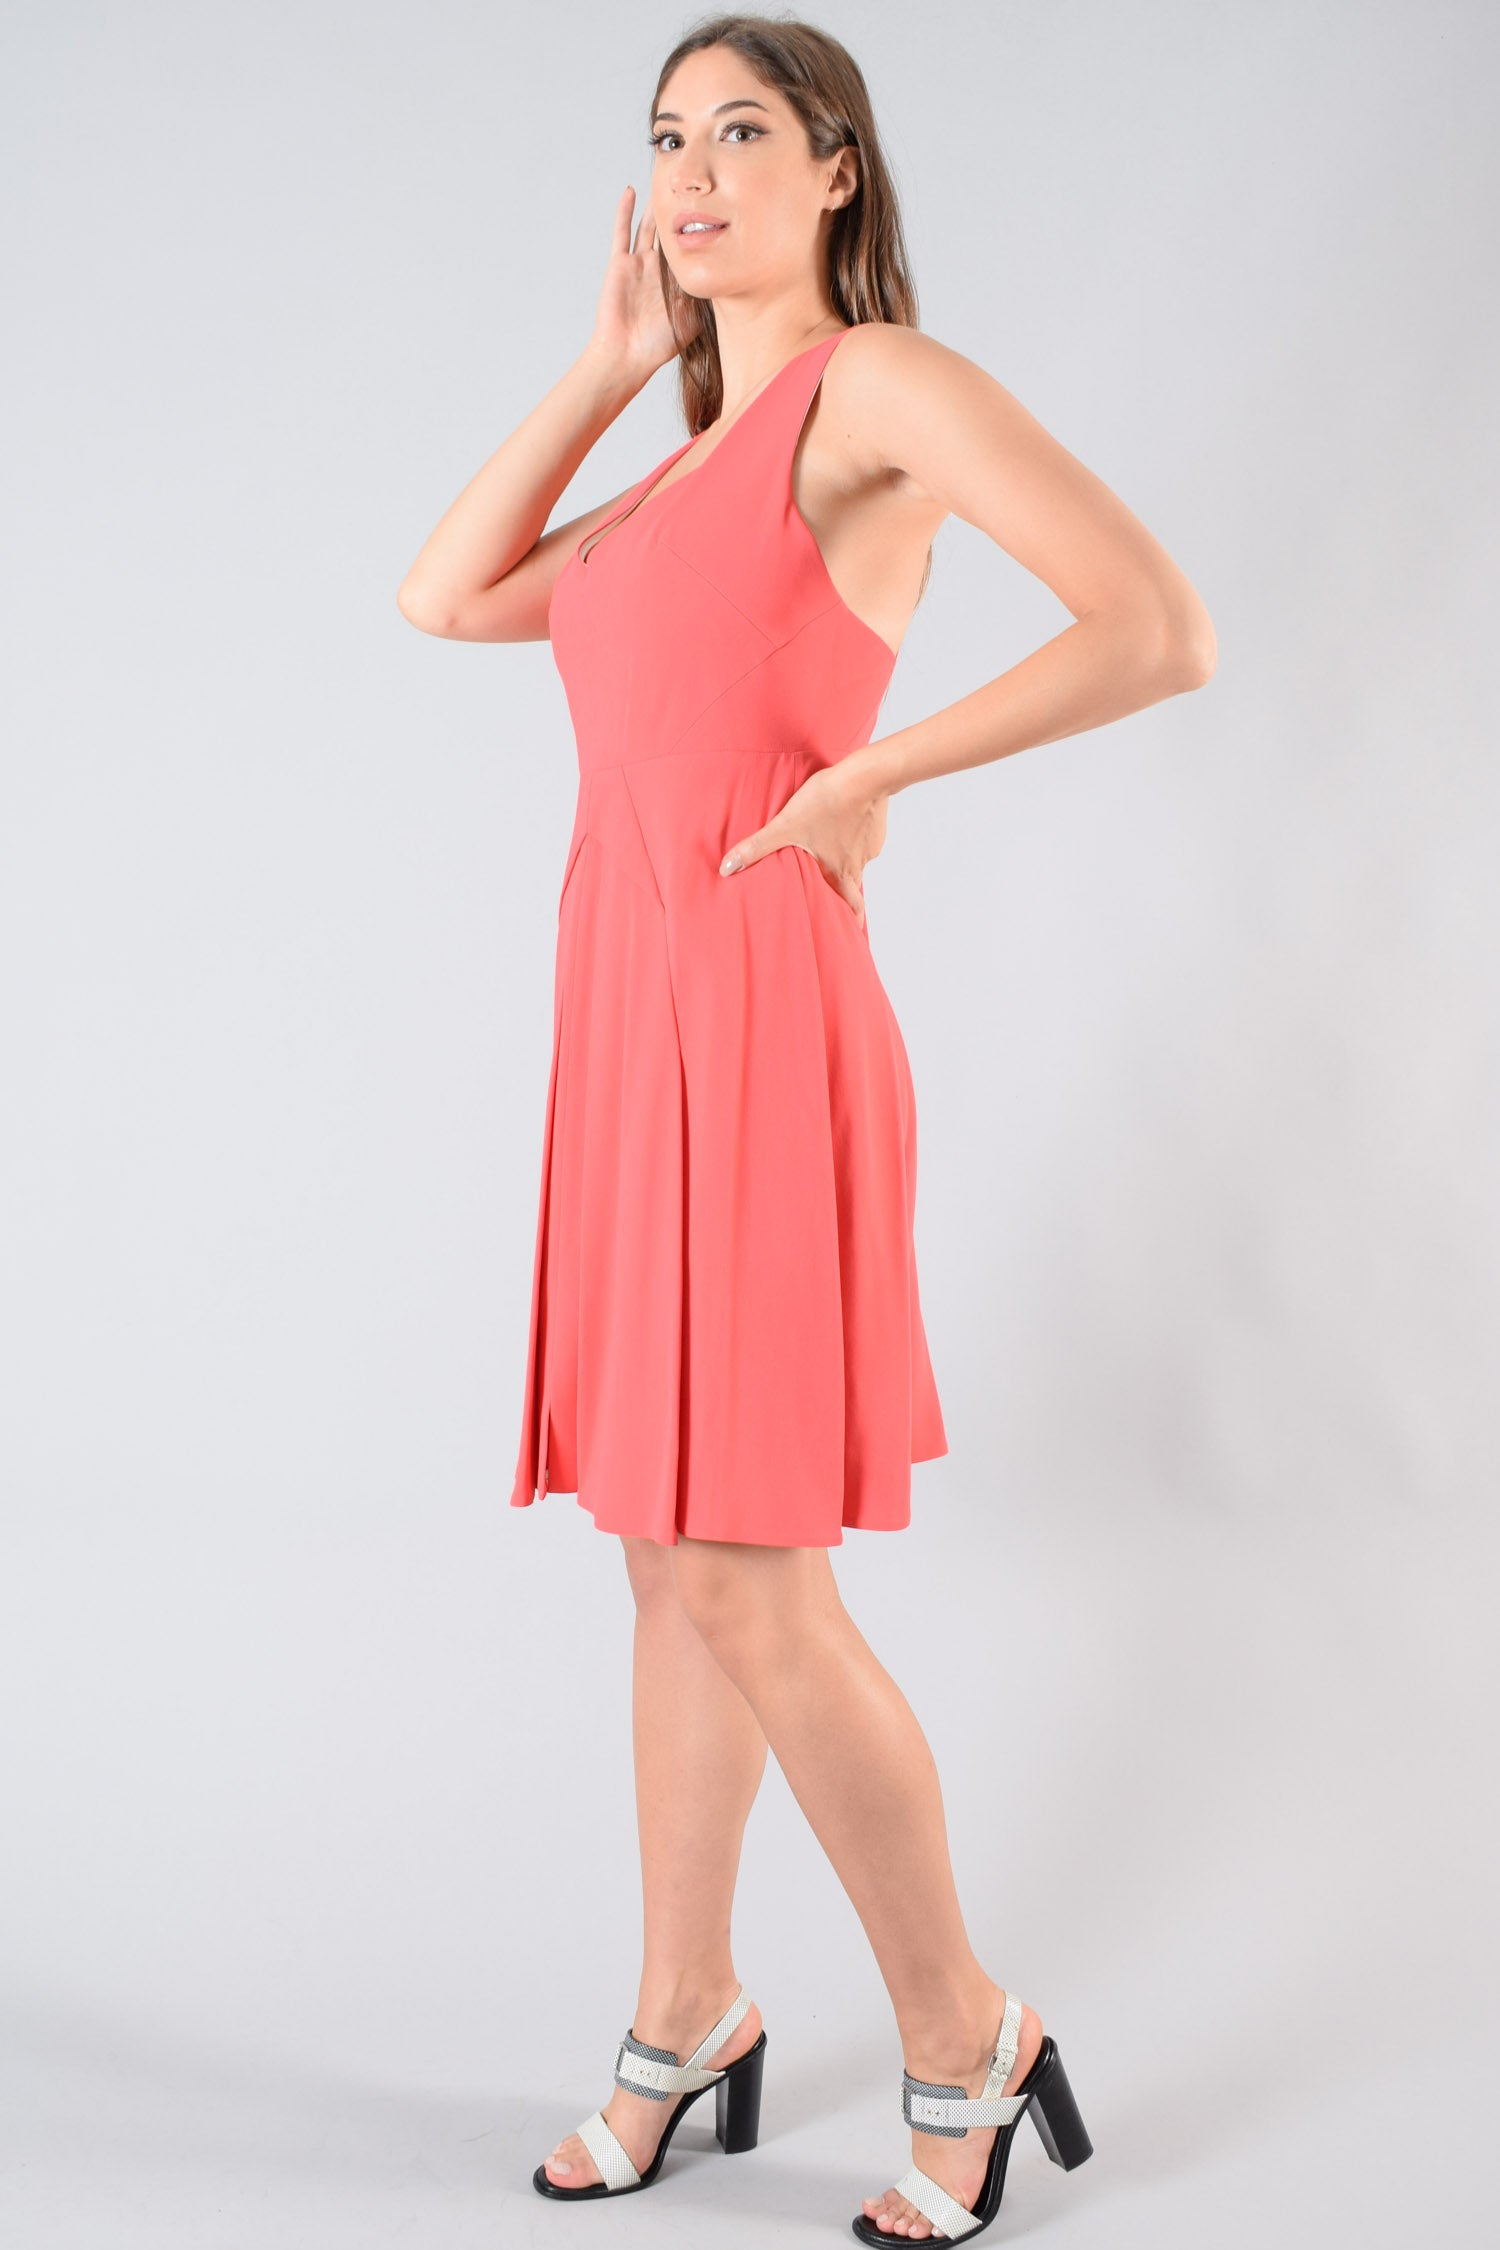 Roland Mouret Coral Sleeveless Dress Size 12 US